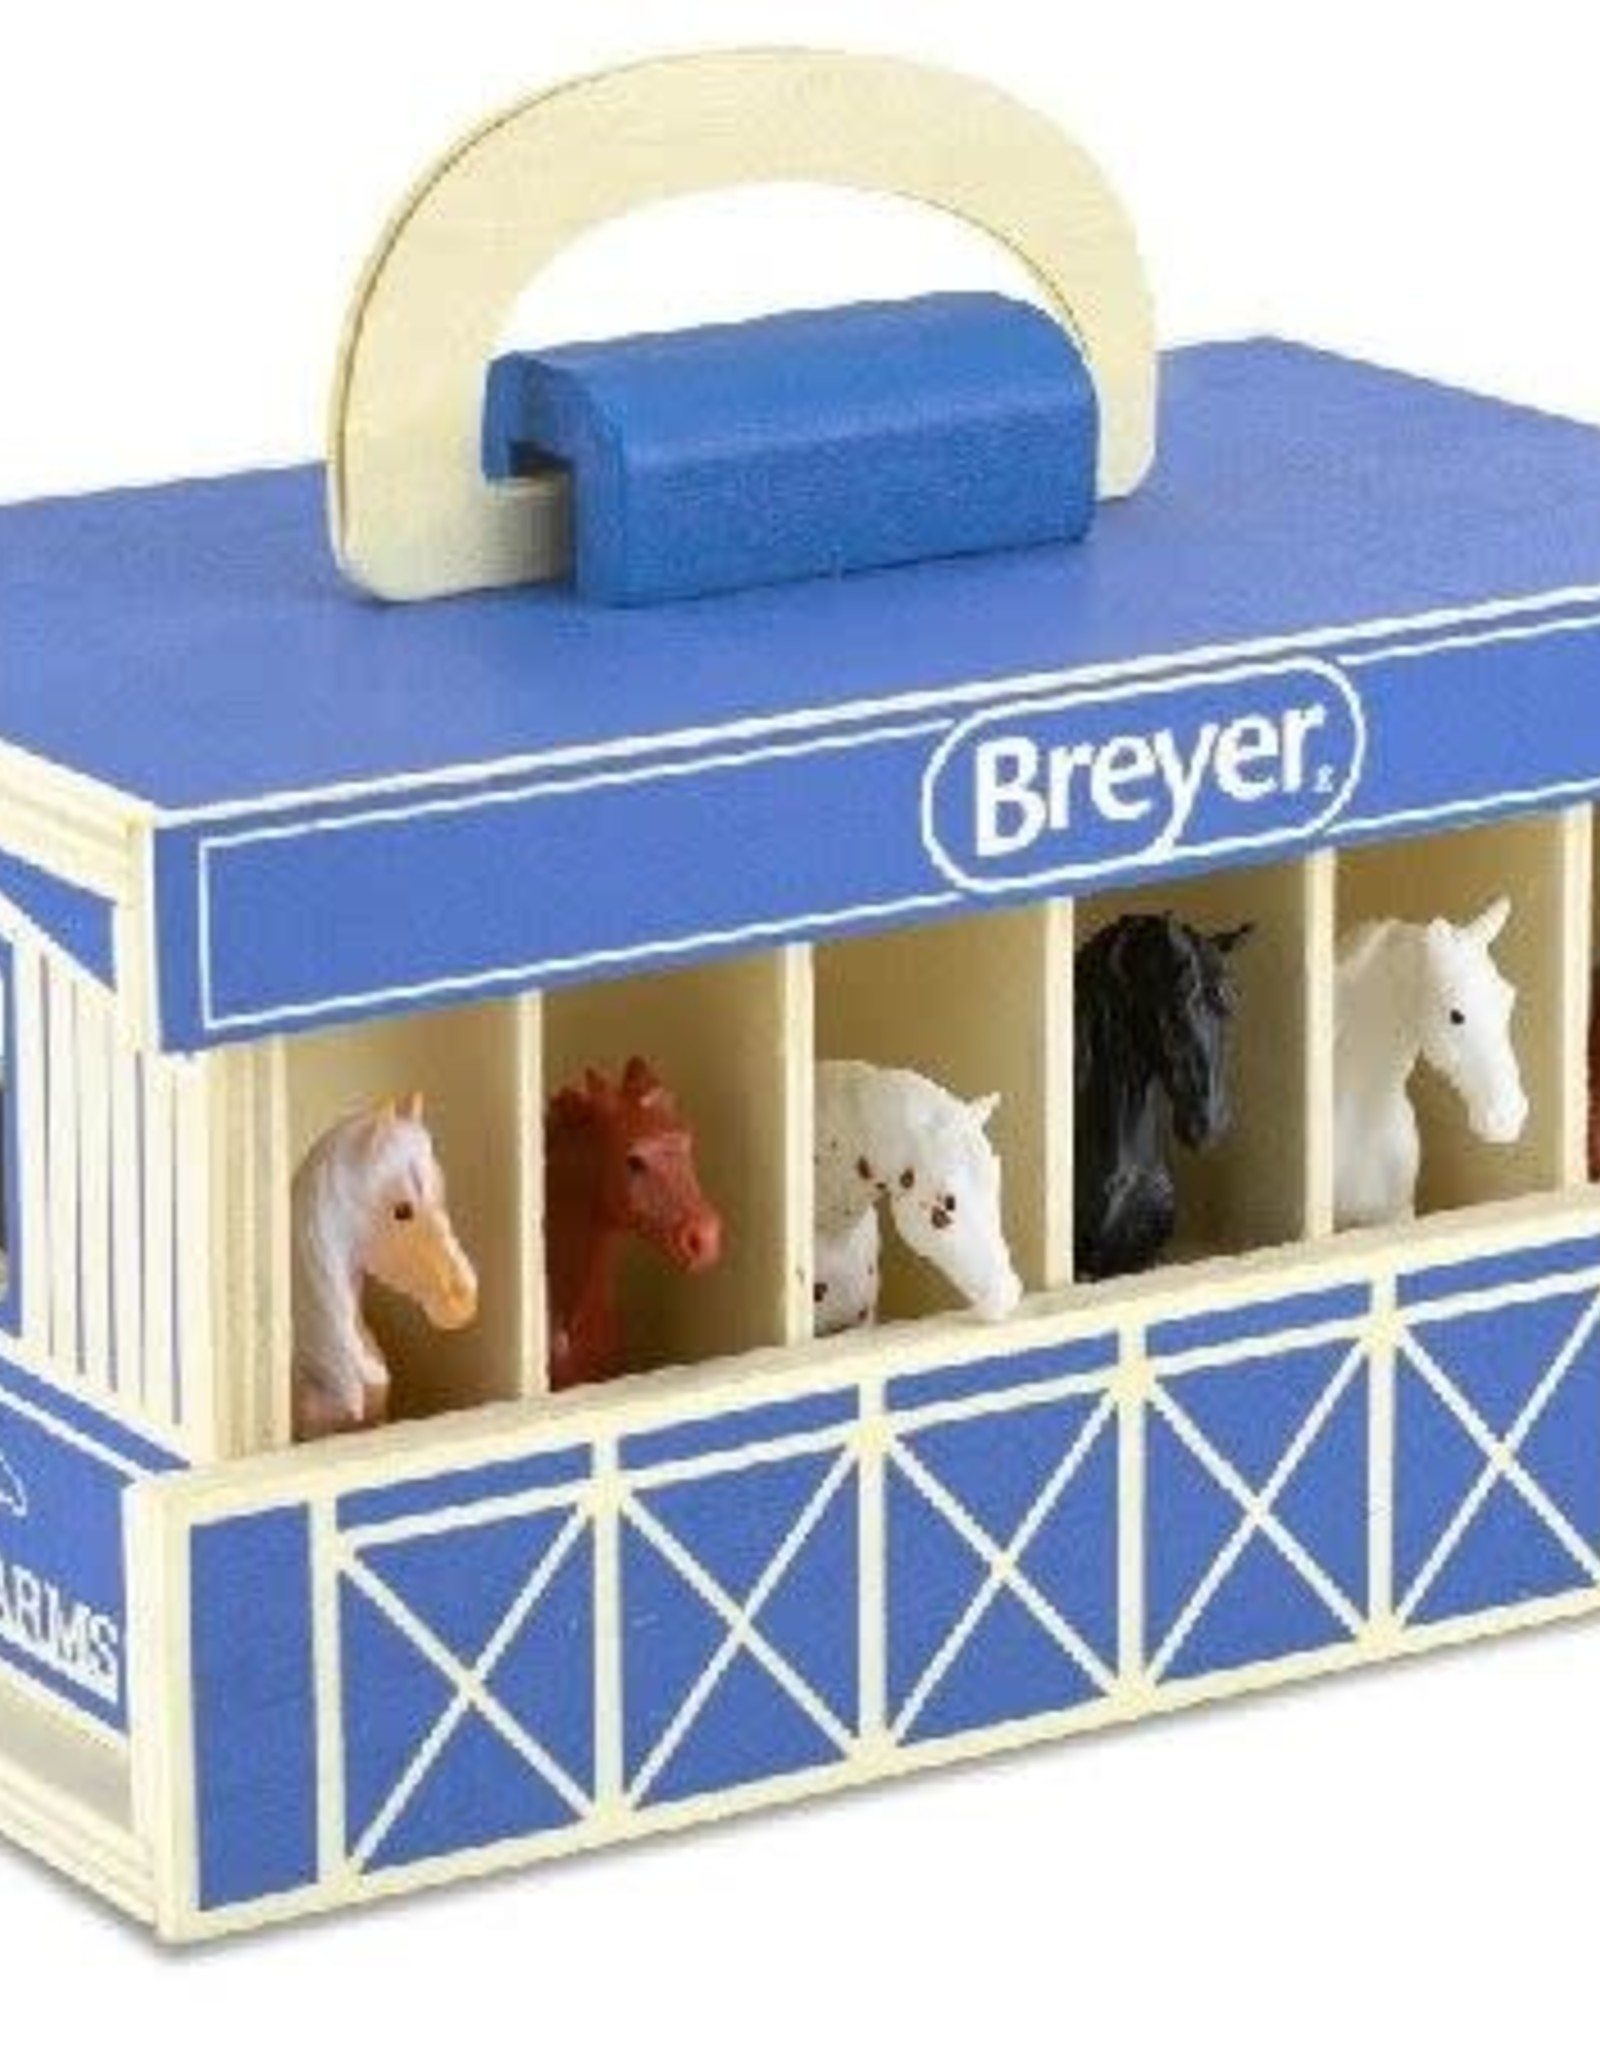 Breyer Breyer Farms Wooden Carry Case